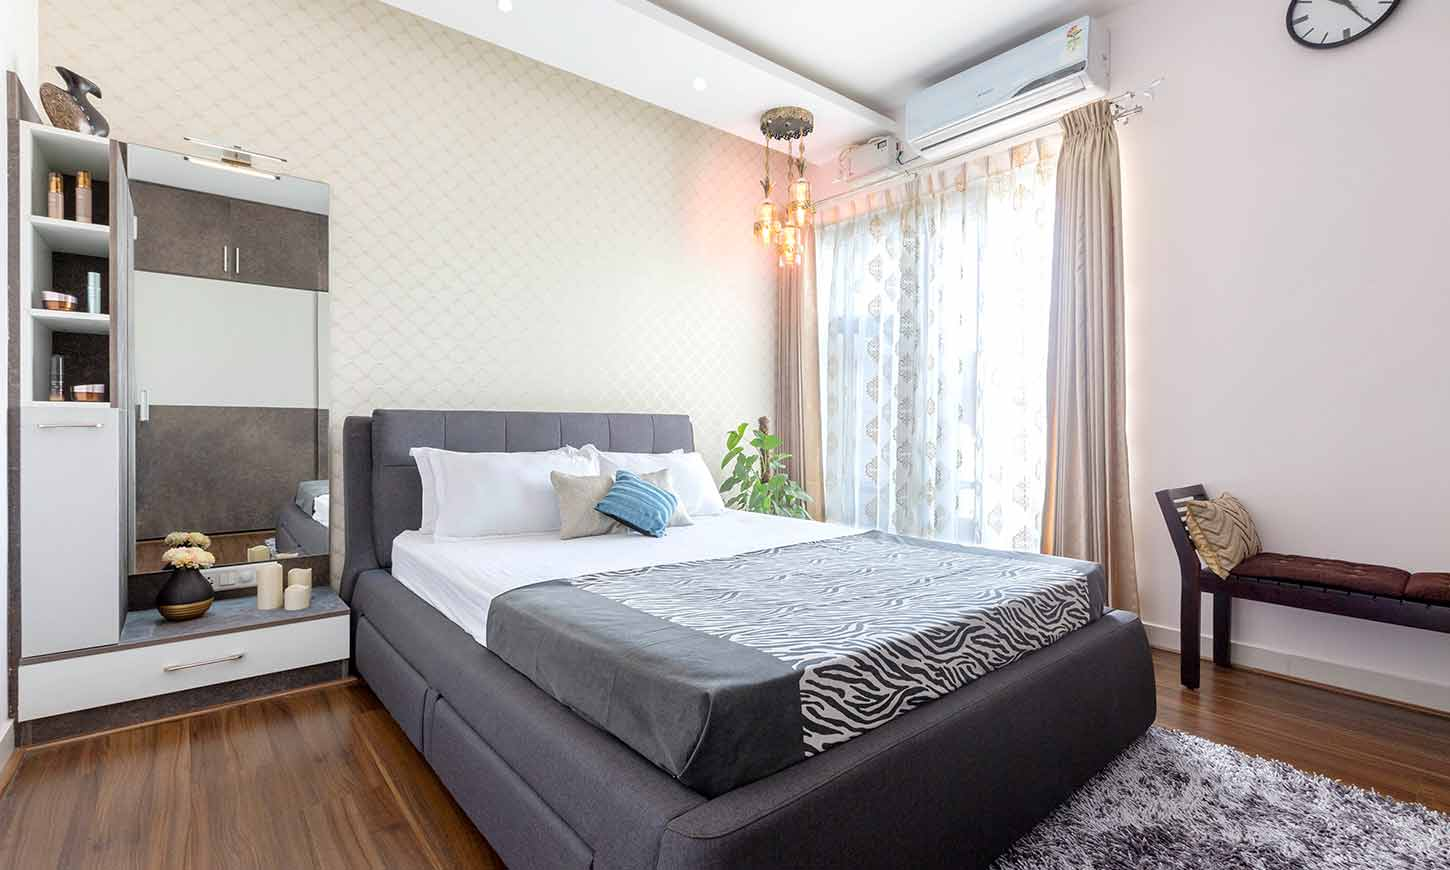 Bedroom interior design bangalore by design cafe interiors for your home